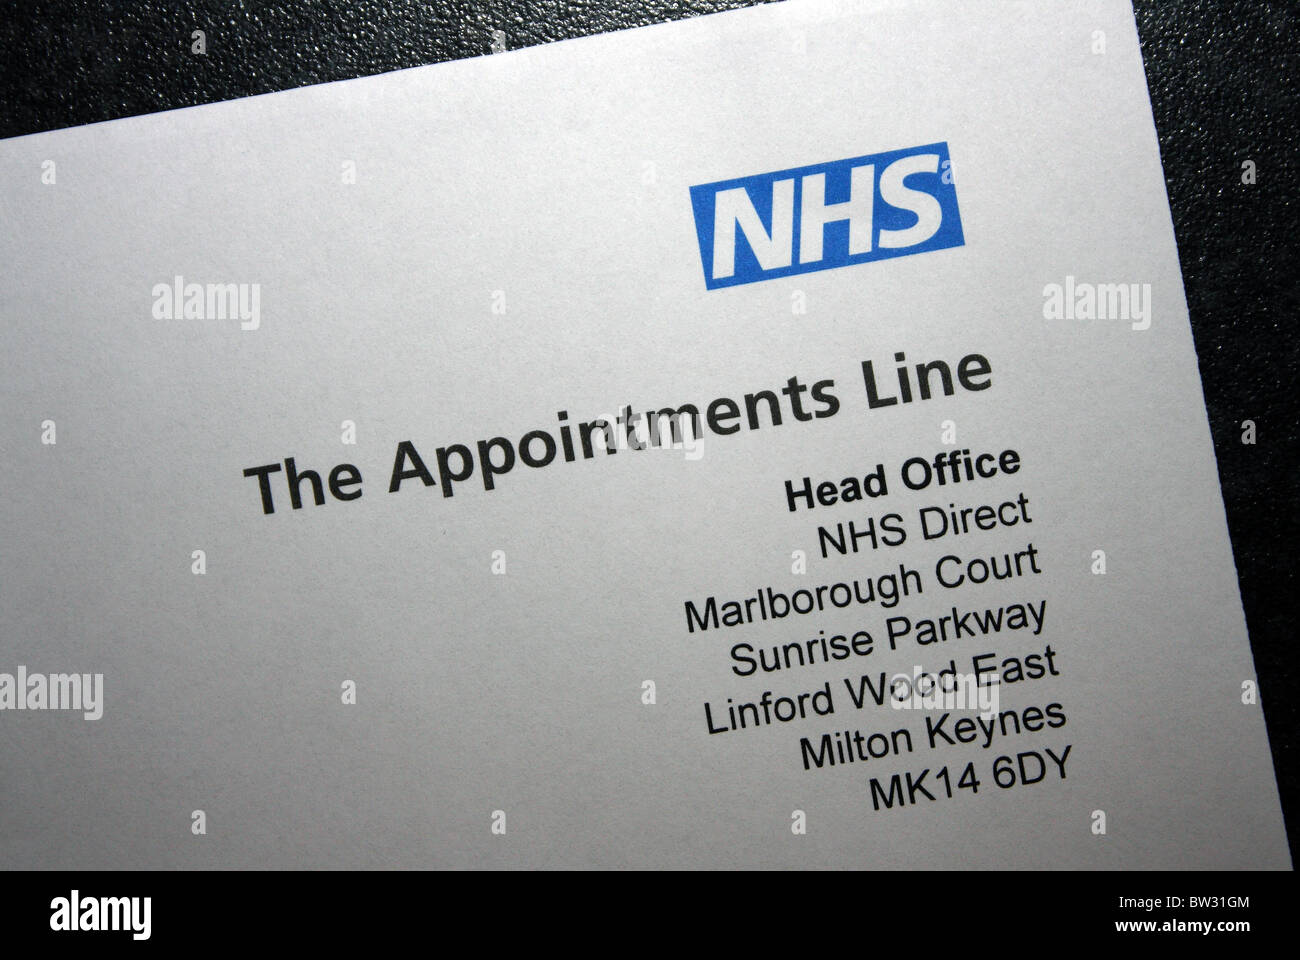 A NHS Direct letterhead containing their address and NHS logo Stock Photo Royalty Free Image